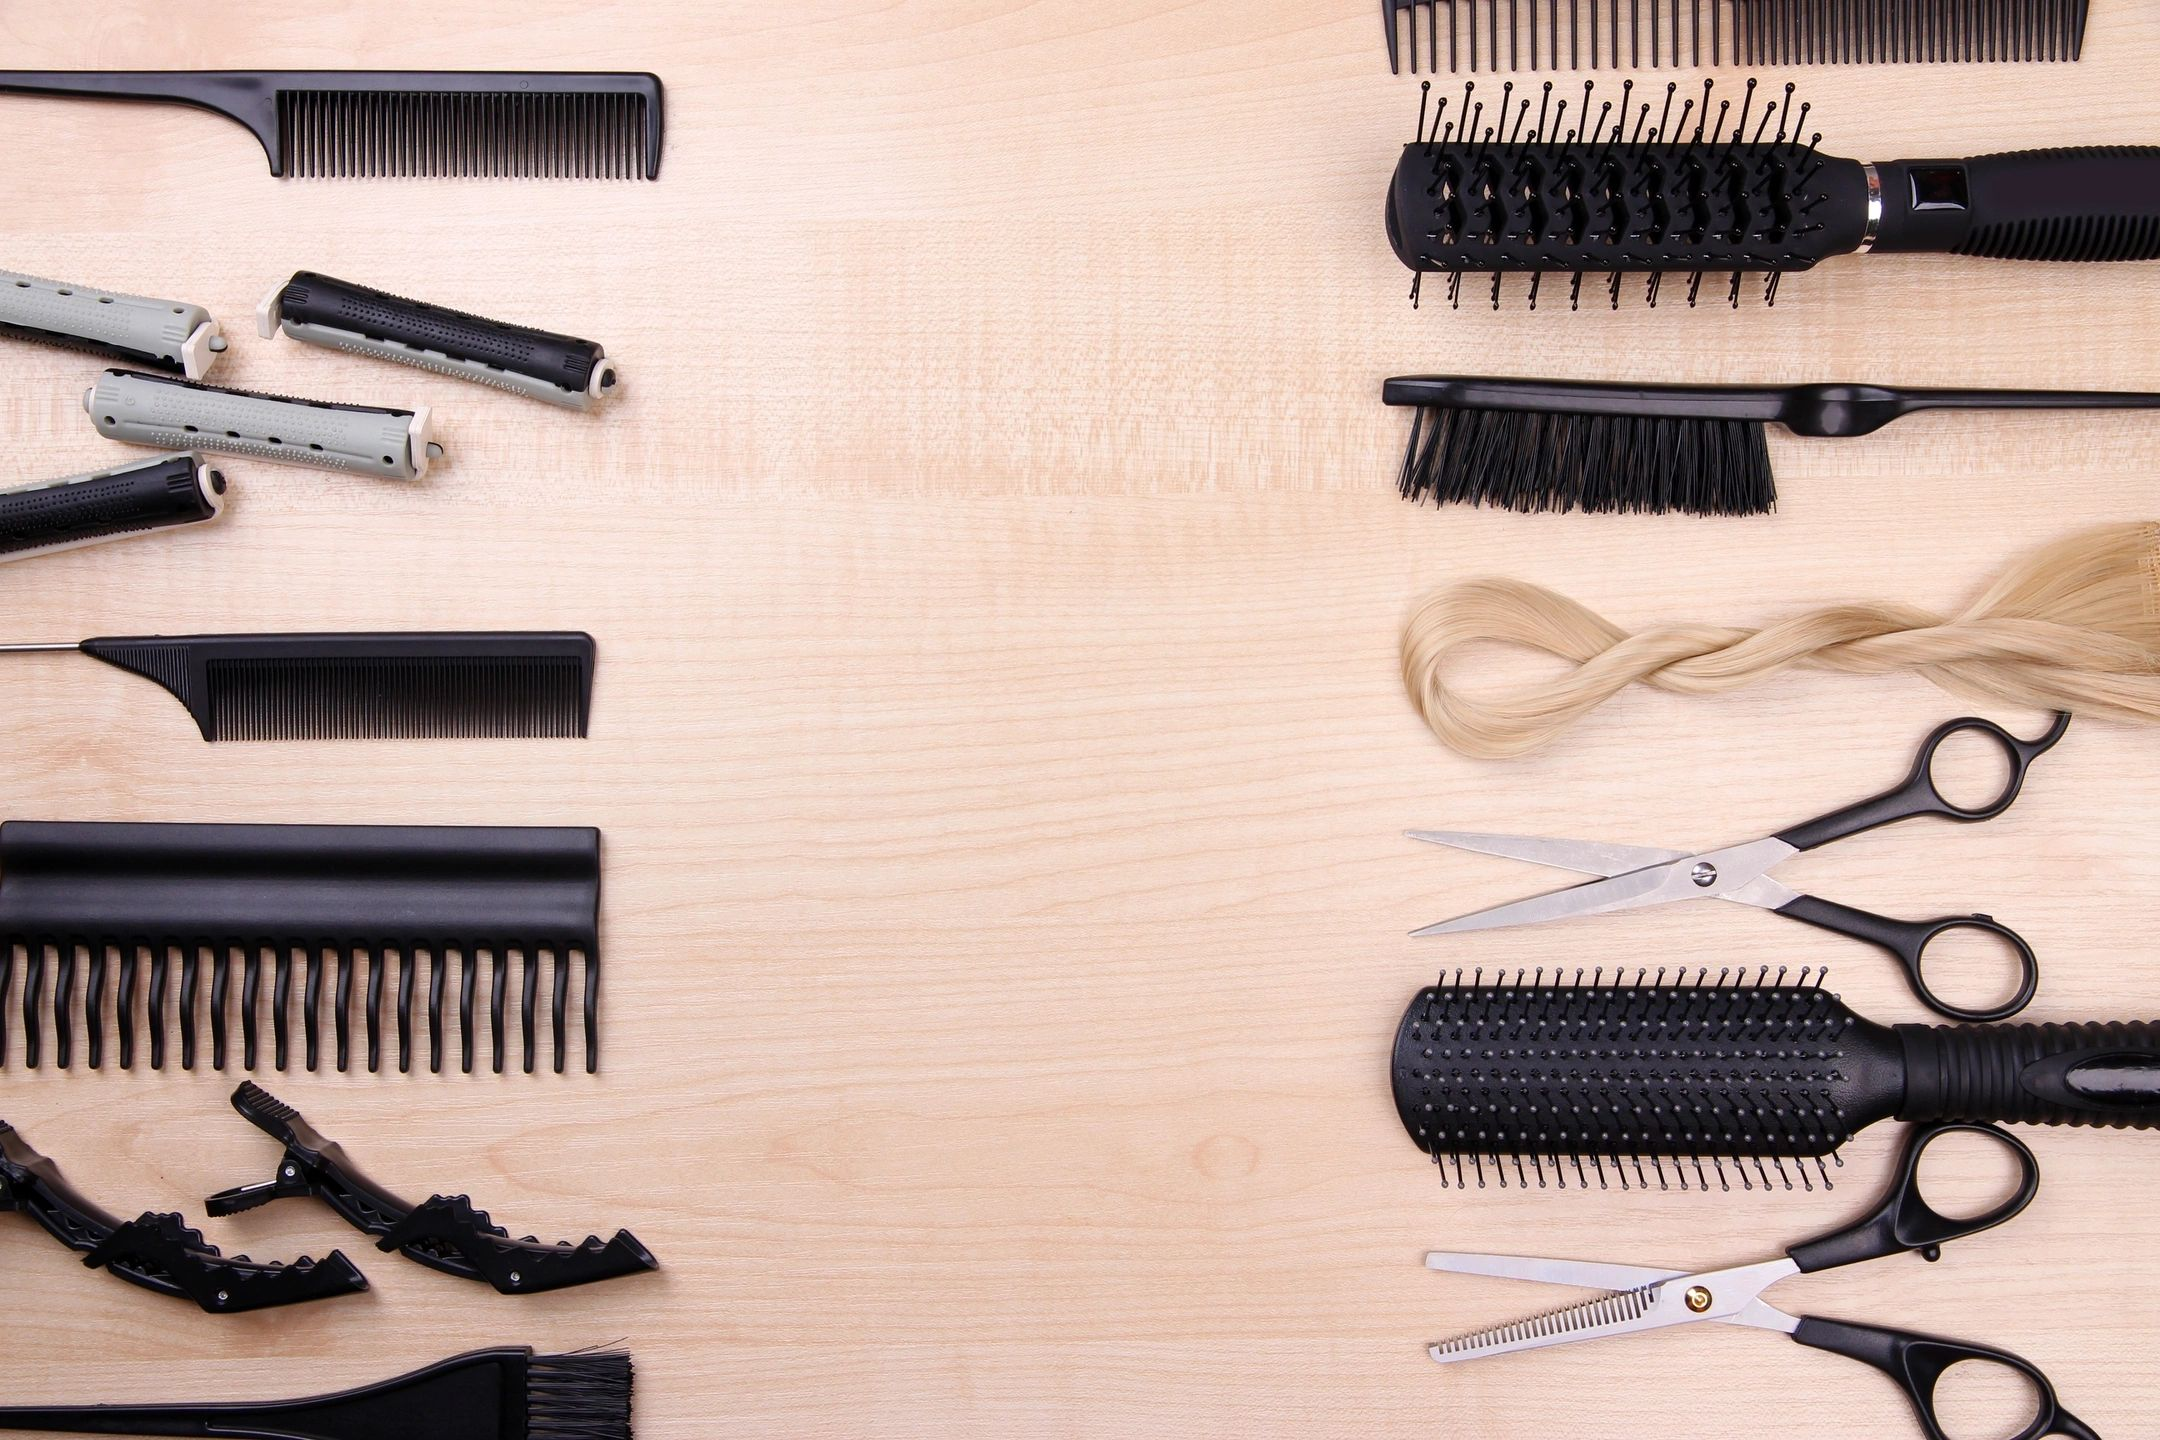 Picture of salon equipment for services offered